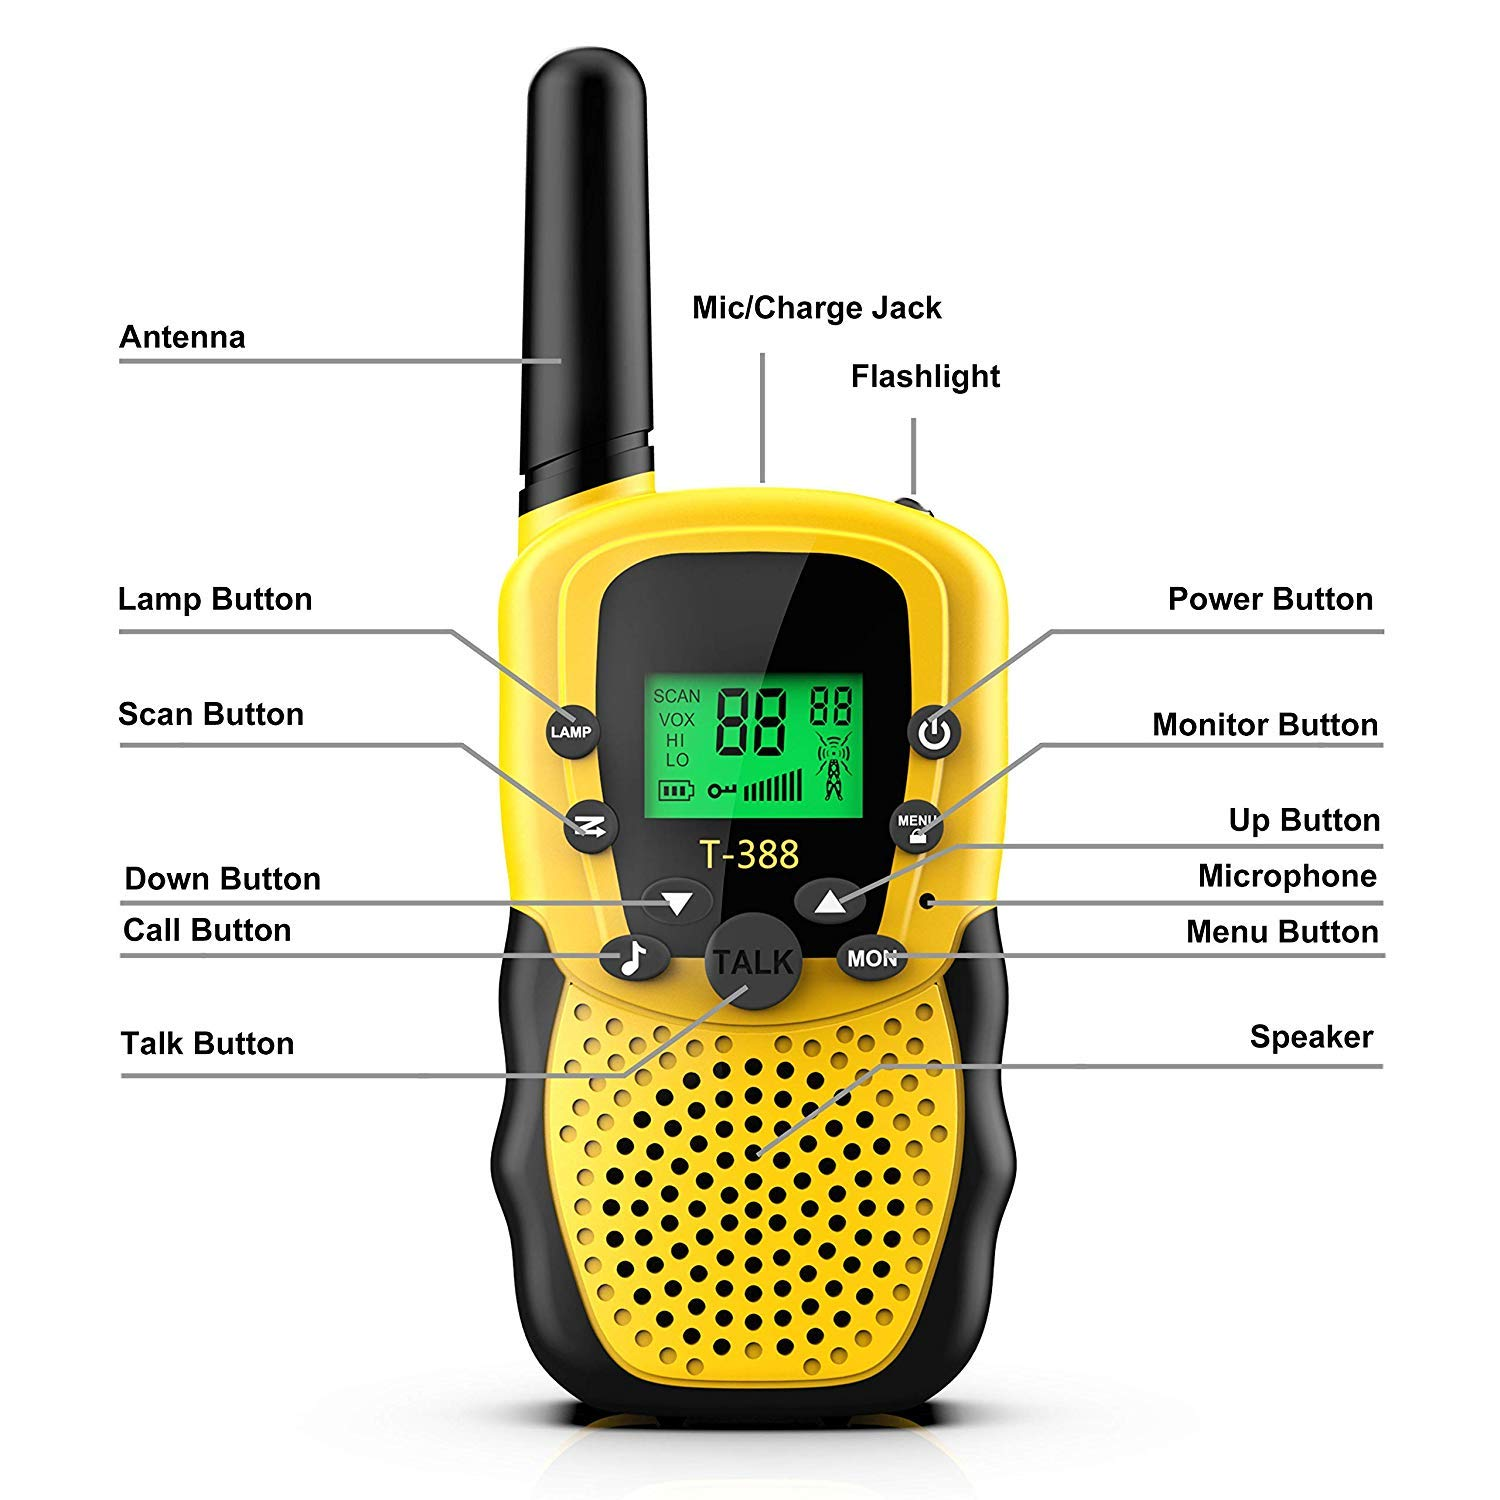 Kids Walkie Talkies, Walkie Talkies for Boys and Girls, 22 Channels 10 Customized Ringtones with Flashlight for Outdoors Good Parenting Toys by VERDUO (Image #3)